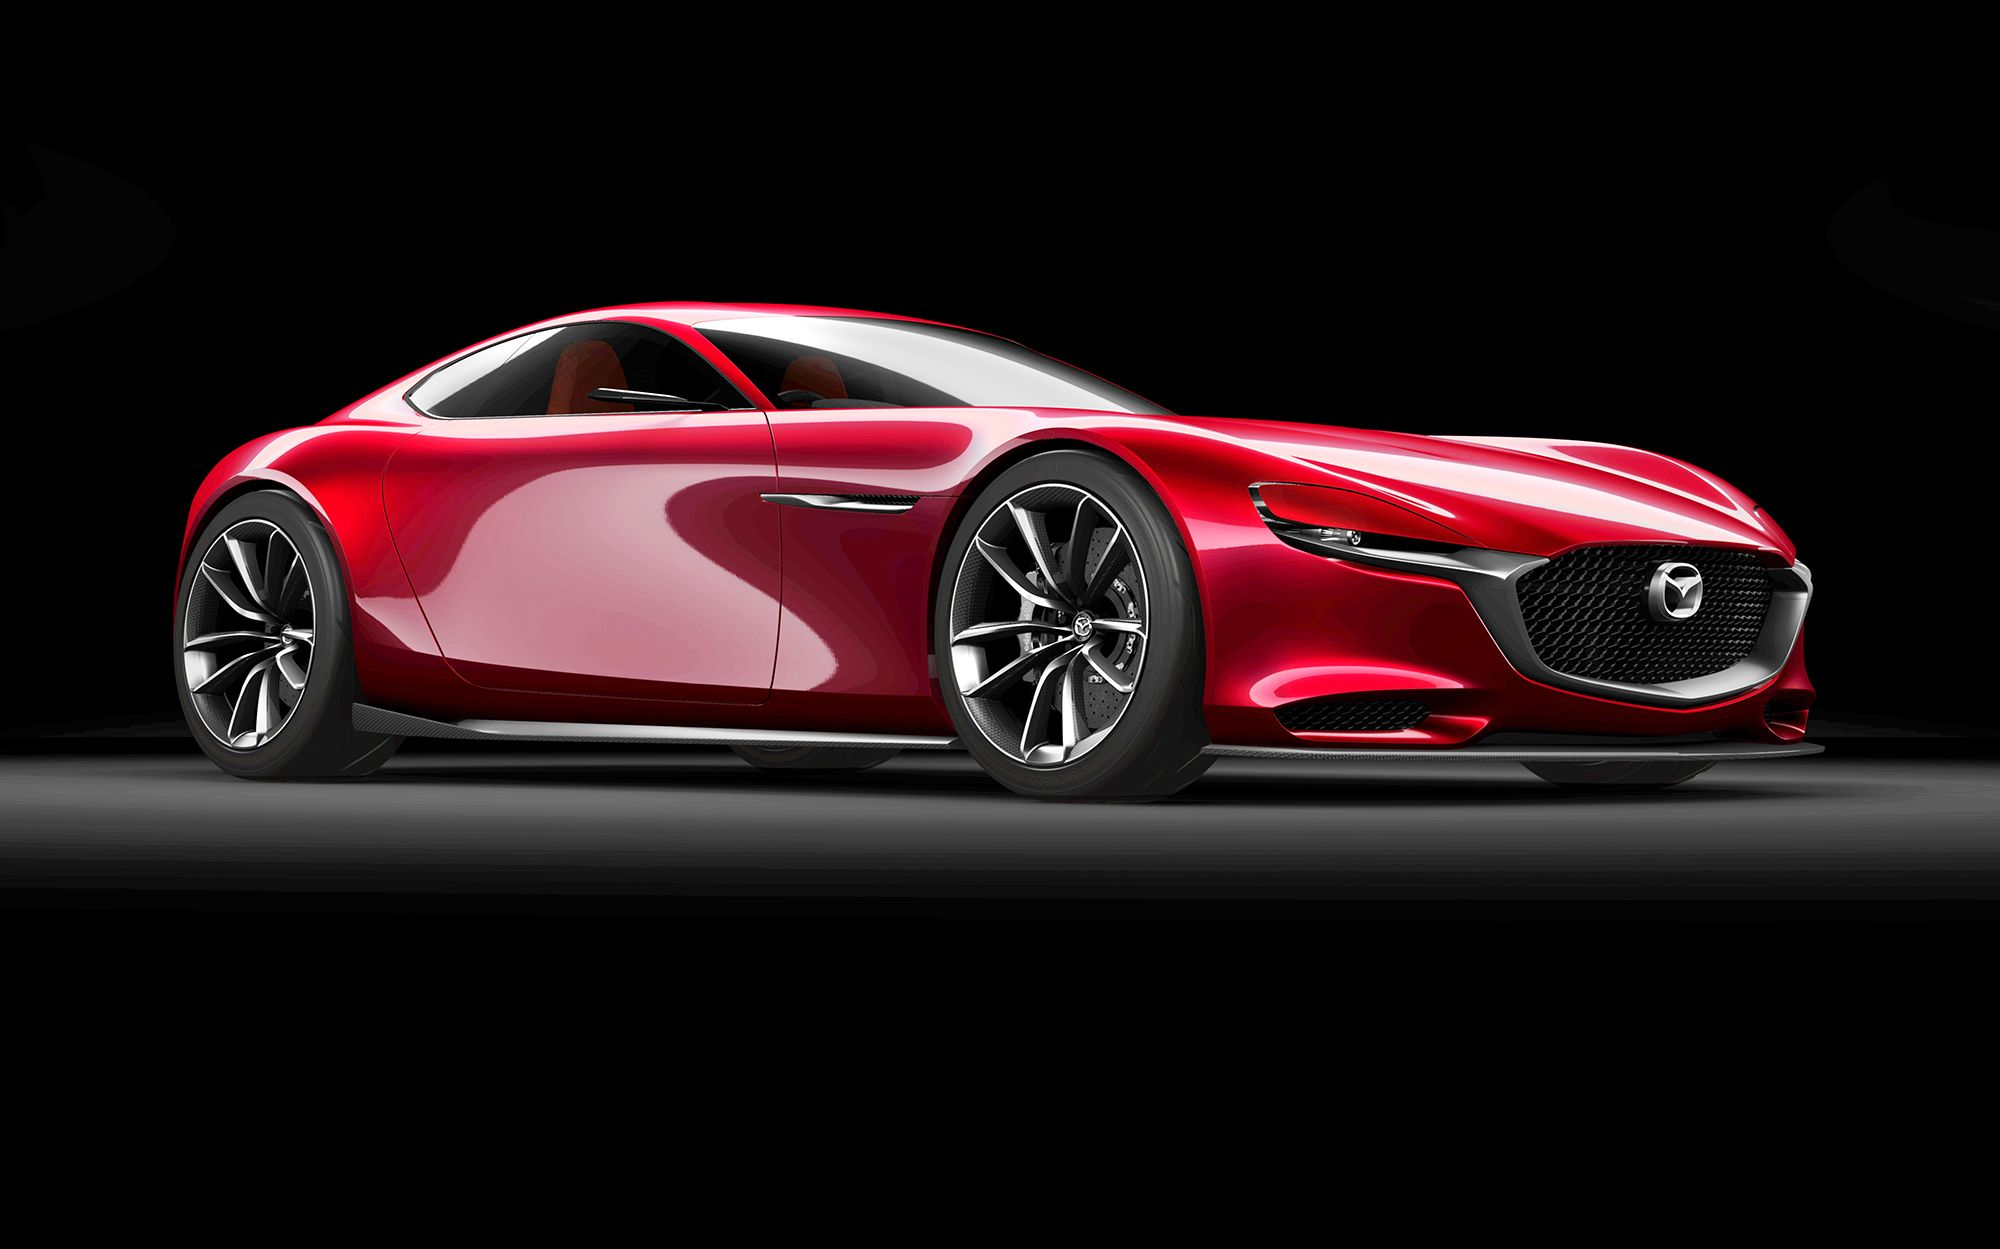 2018 mazda rx7 price specs release date interior 2018 2019 auto guide new cars pinterest mazda rx7 and engine